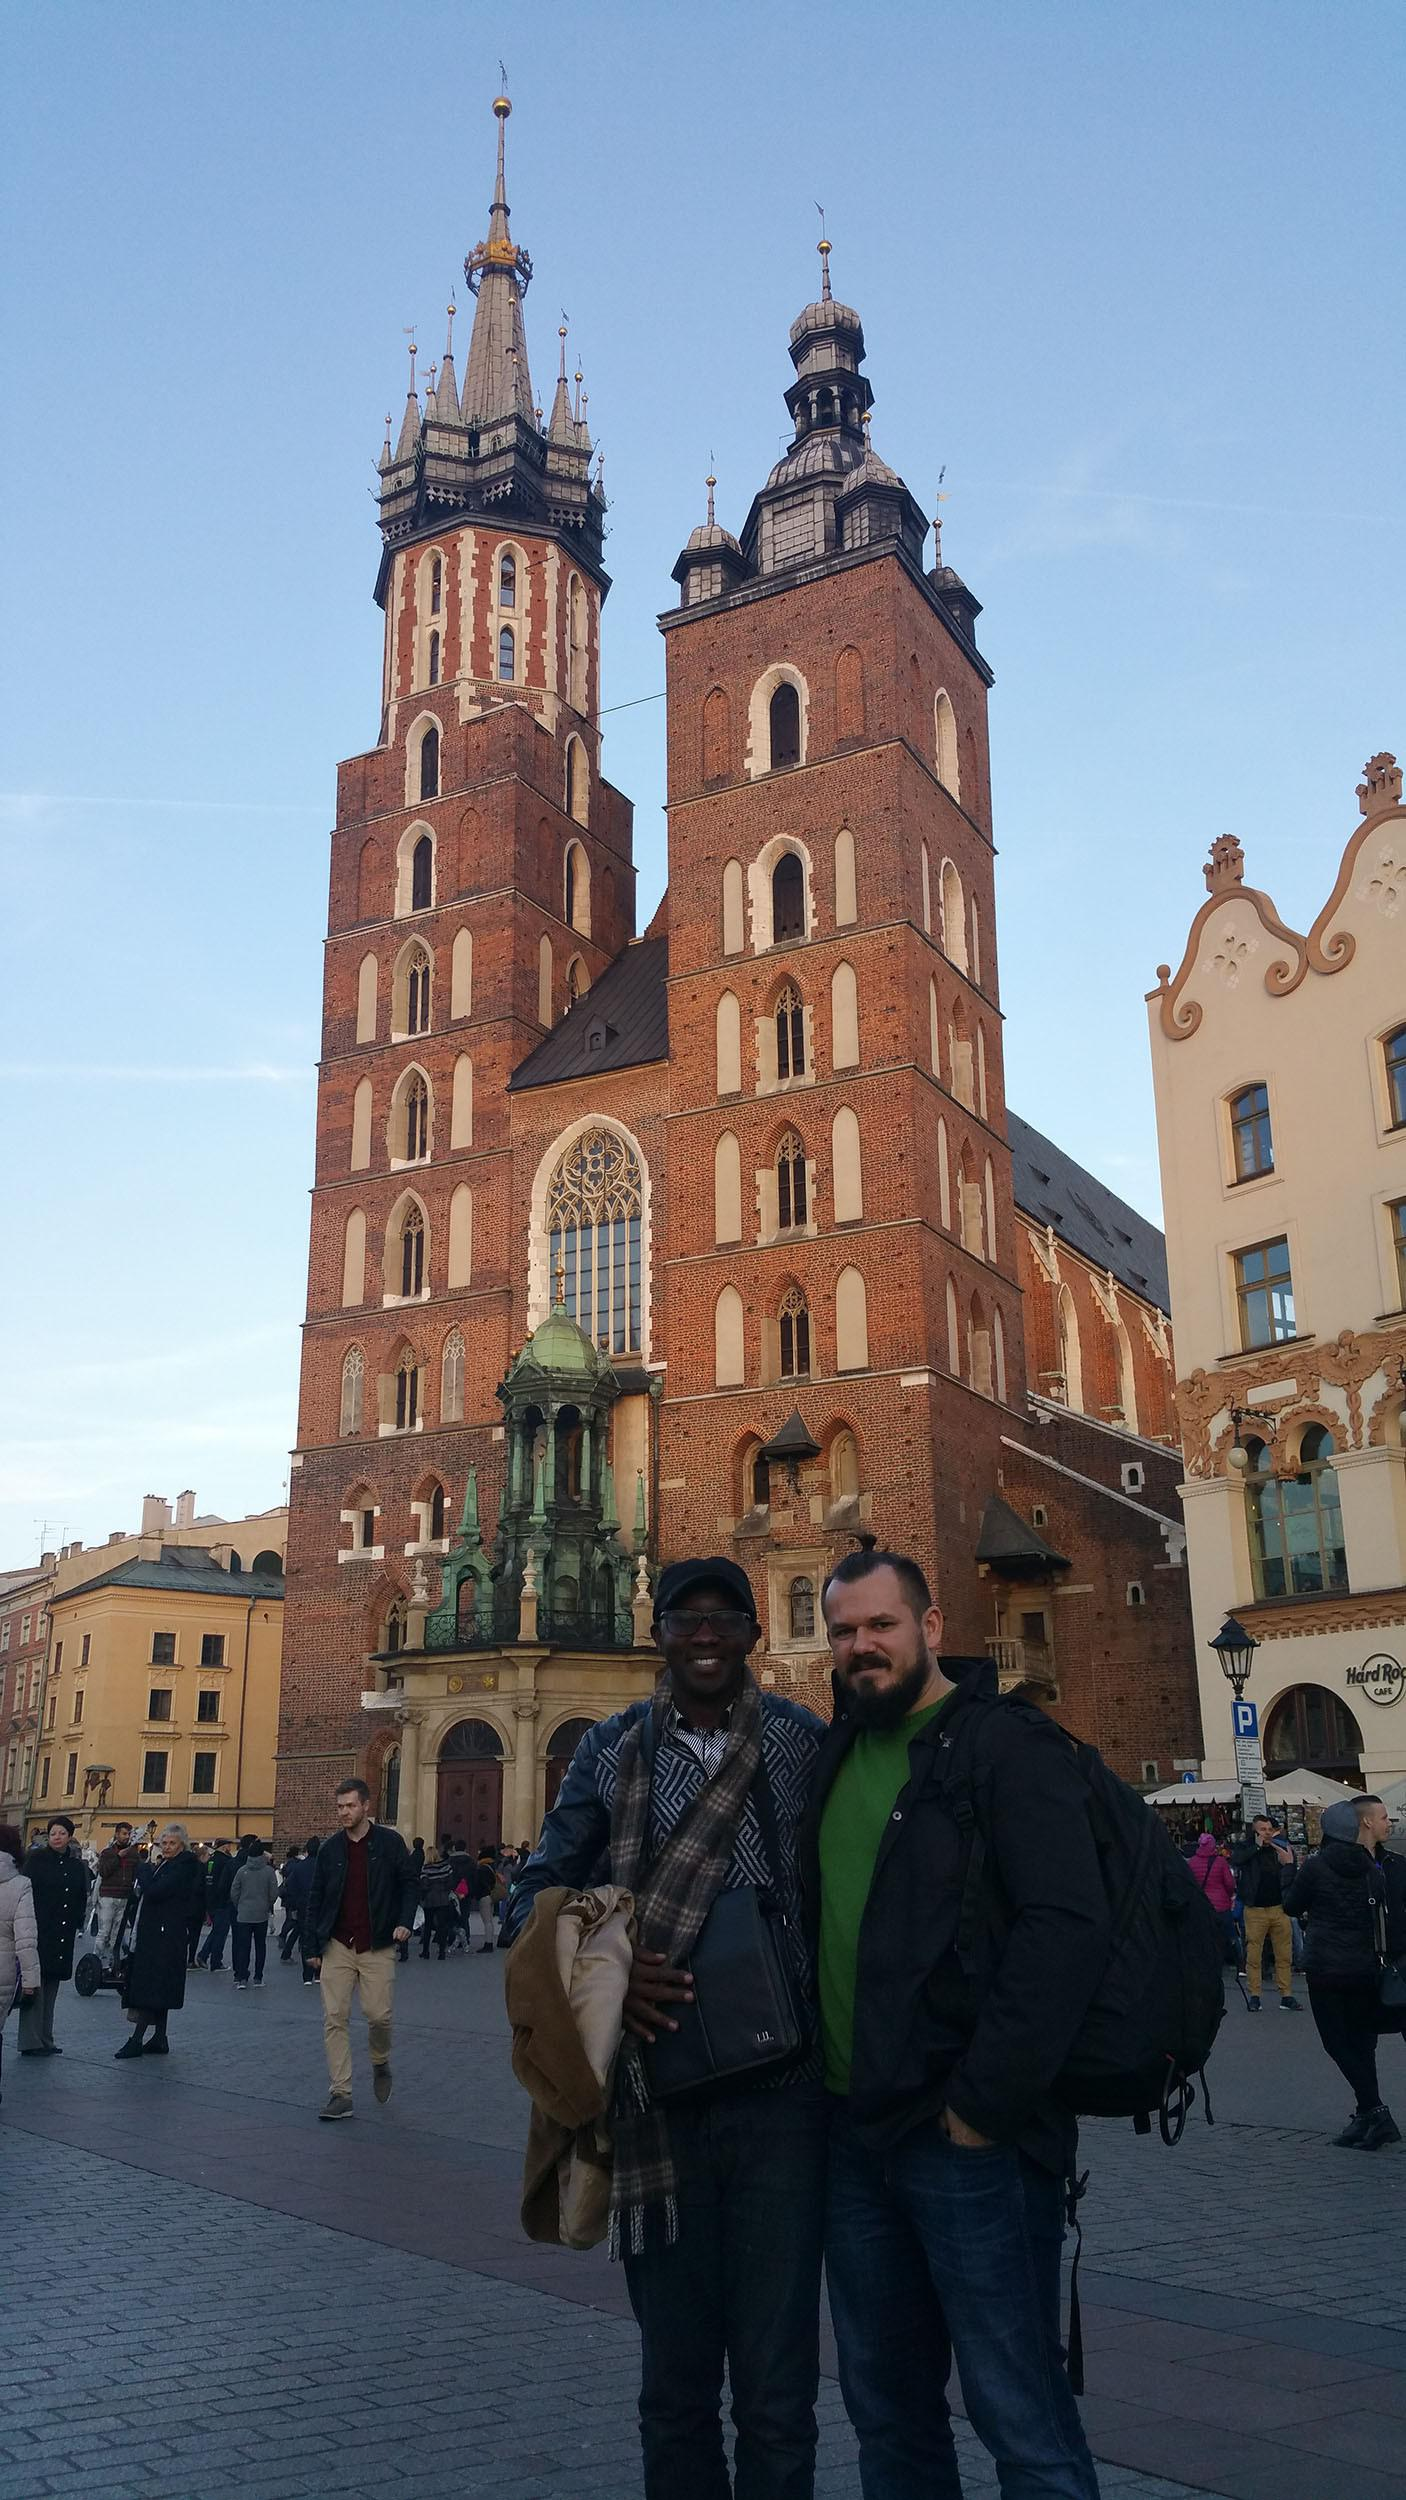 Aimable Mpayimana (Rwandan Federation Secretary) and Mateusz Prendota( President of the Polish Federation ) in Krakow, Poland 2018